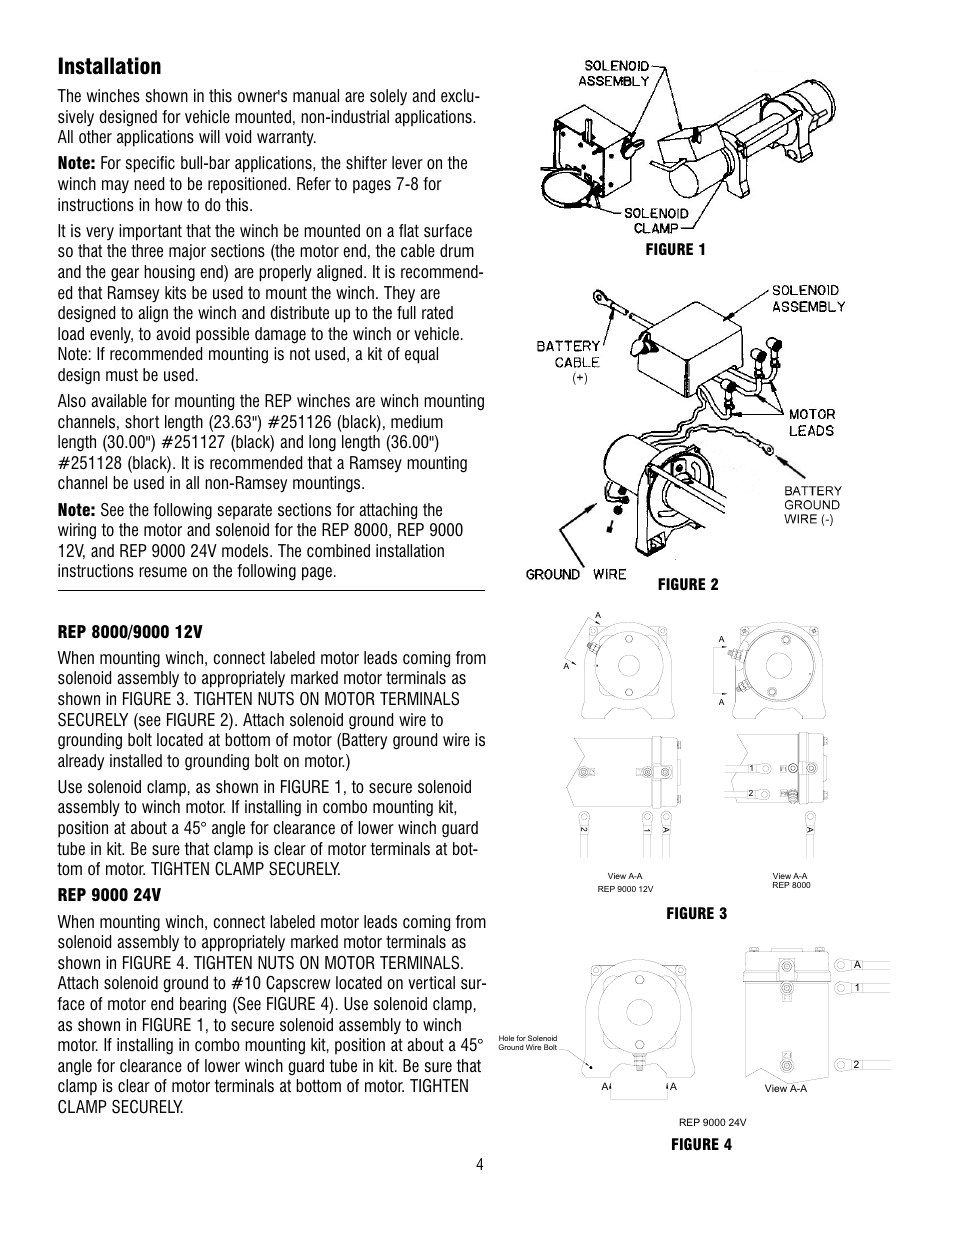 Ramsey Rep 8000 Winch Wiring Simple Diagram 12000 Installation 9000 User Manual Page 6 58 Parts 013998